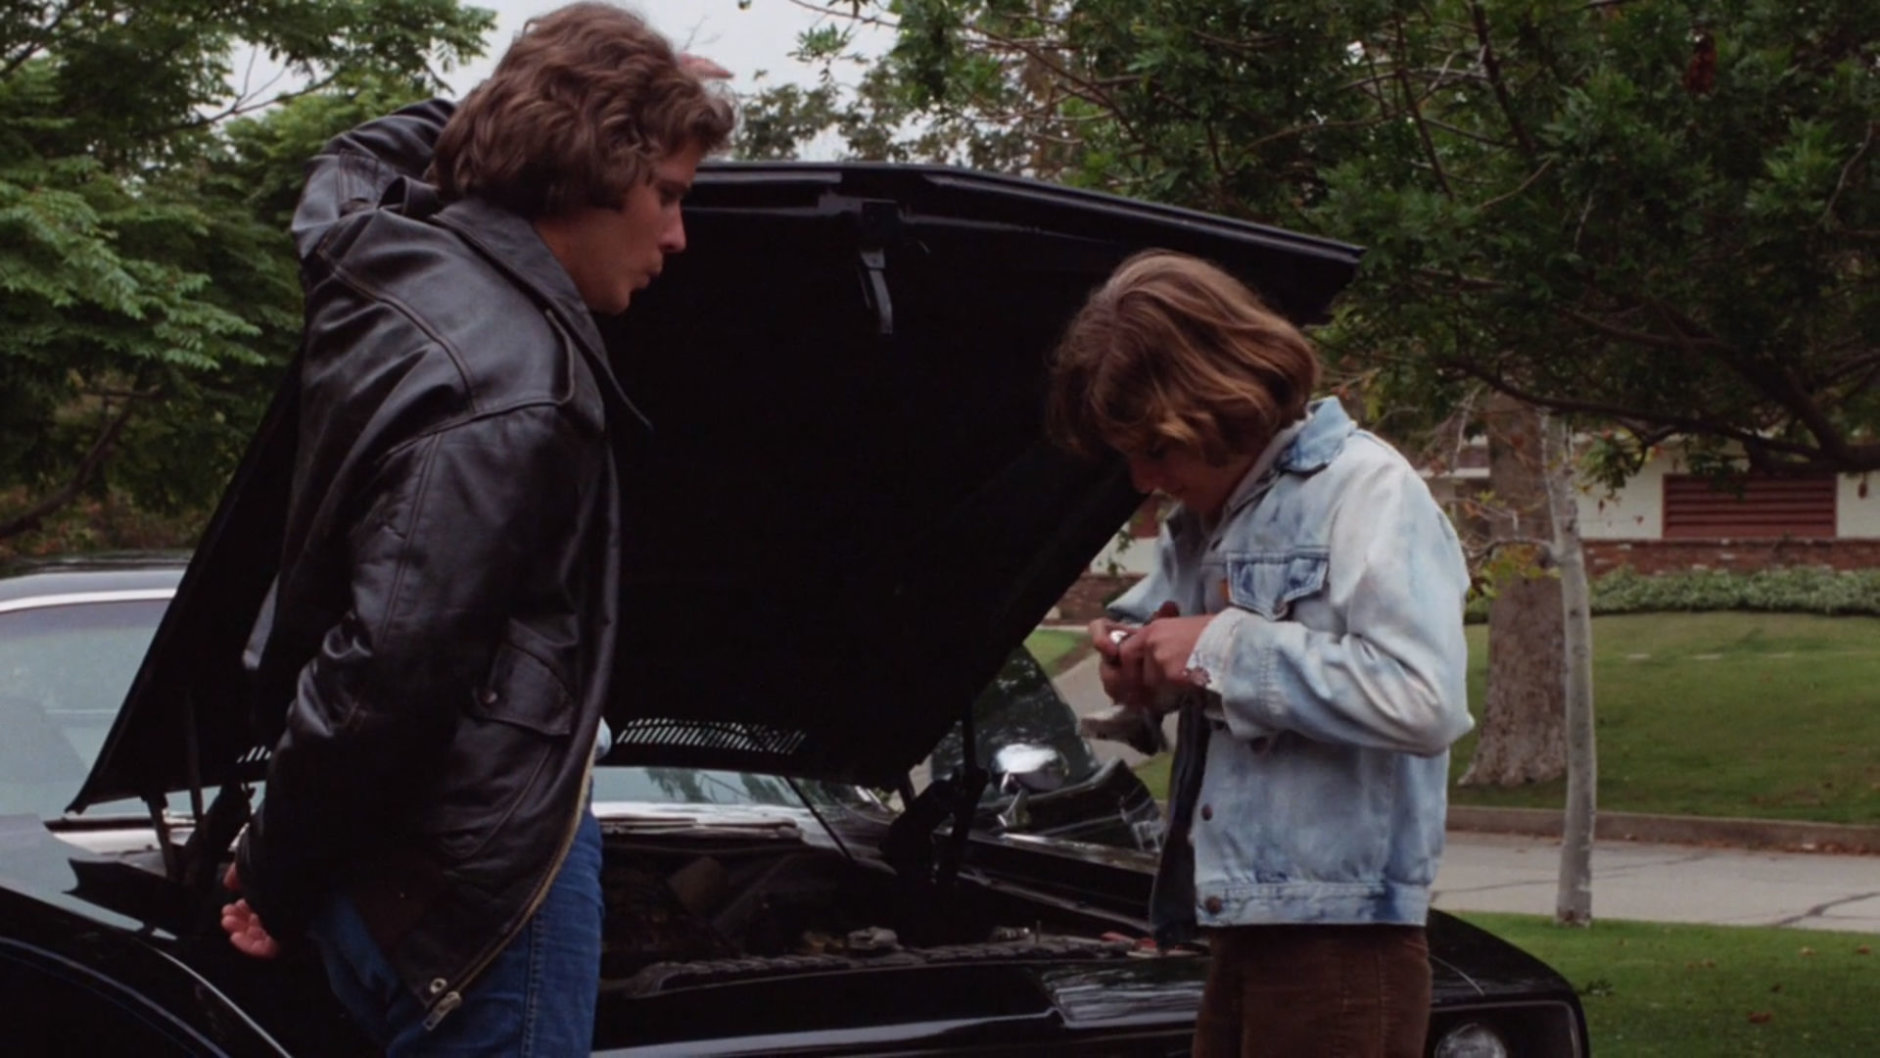 Jody (Bill Thornbury) and Mike (A. Michael Baldwin) work on the iconic (Hemi)Cuda. (Courtesy Silver Sphere Productions)